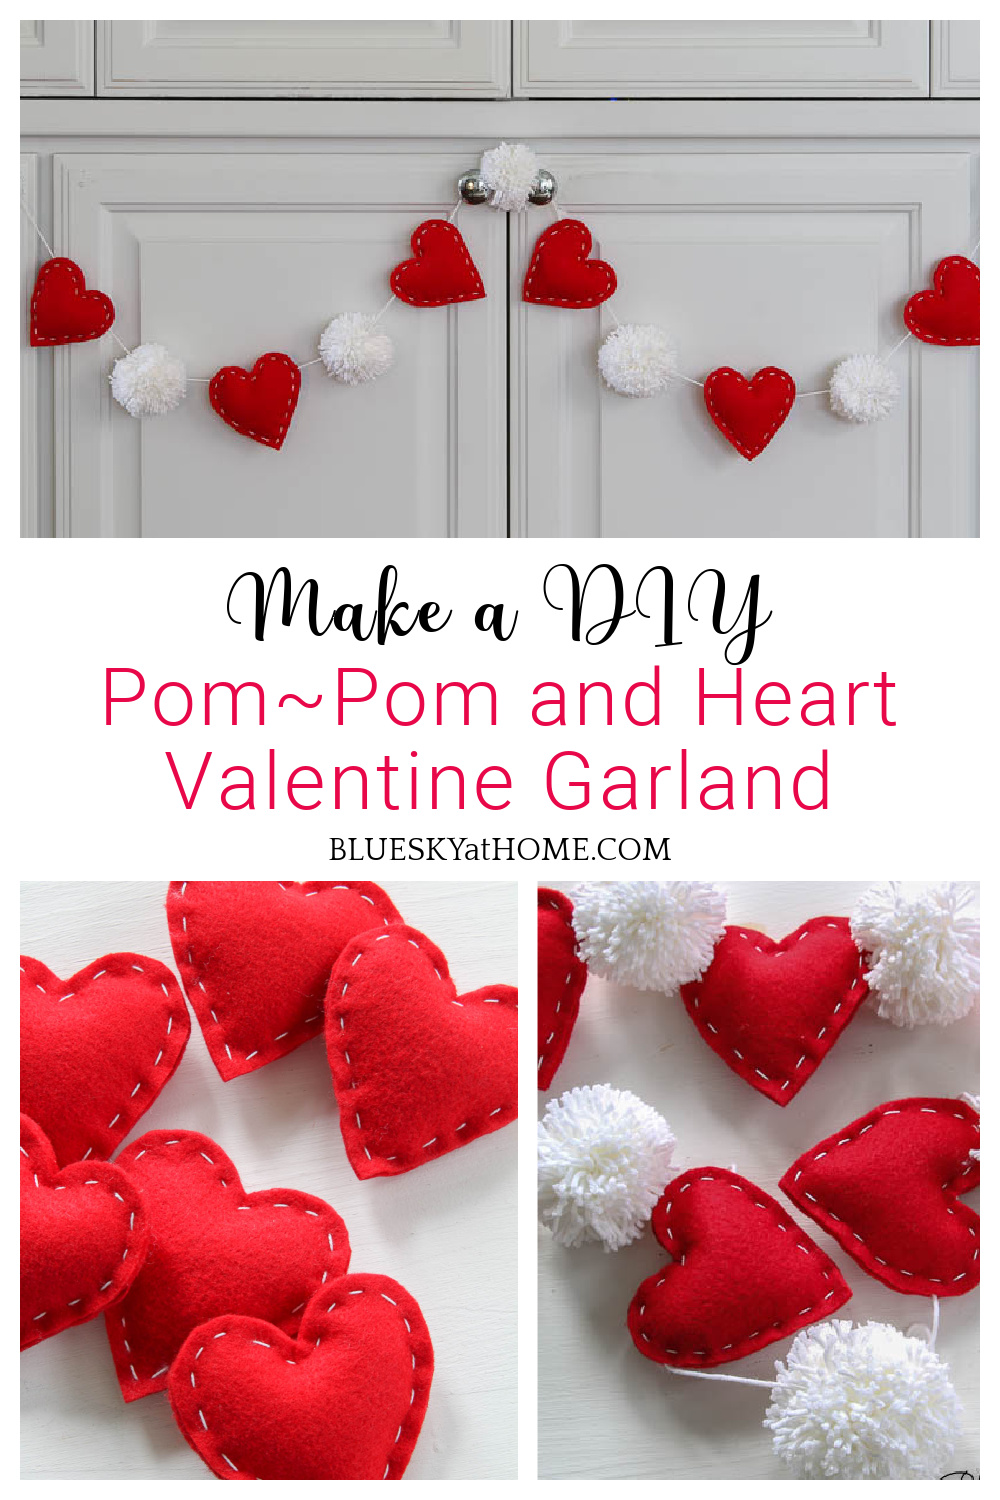 Pinterest Inspired Pom Pom And Heart Valentine Garland Bluesky At Home